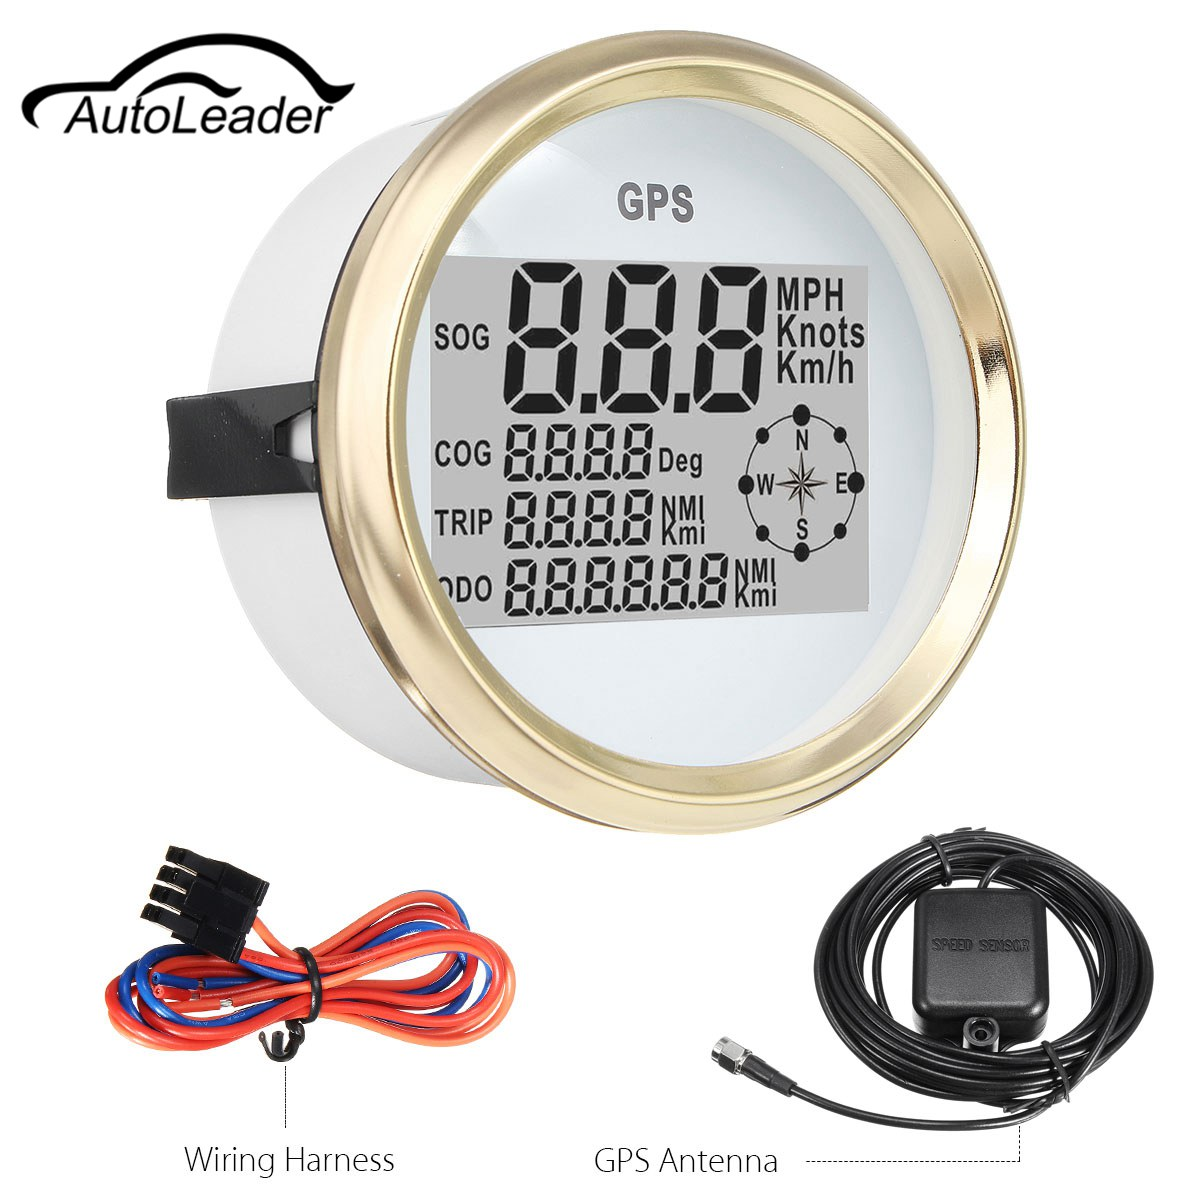 Autoleader 300KM/H GPS Speedometer Waterproof Digital Gauge for Auto Car Truck Marine 9~32V 1pc 0 130km h gps speedometers 85mm speed milometers 0 80mph odometers 9 32v for auto with gps antenna and backlight